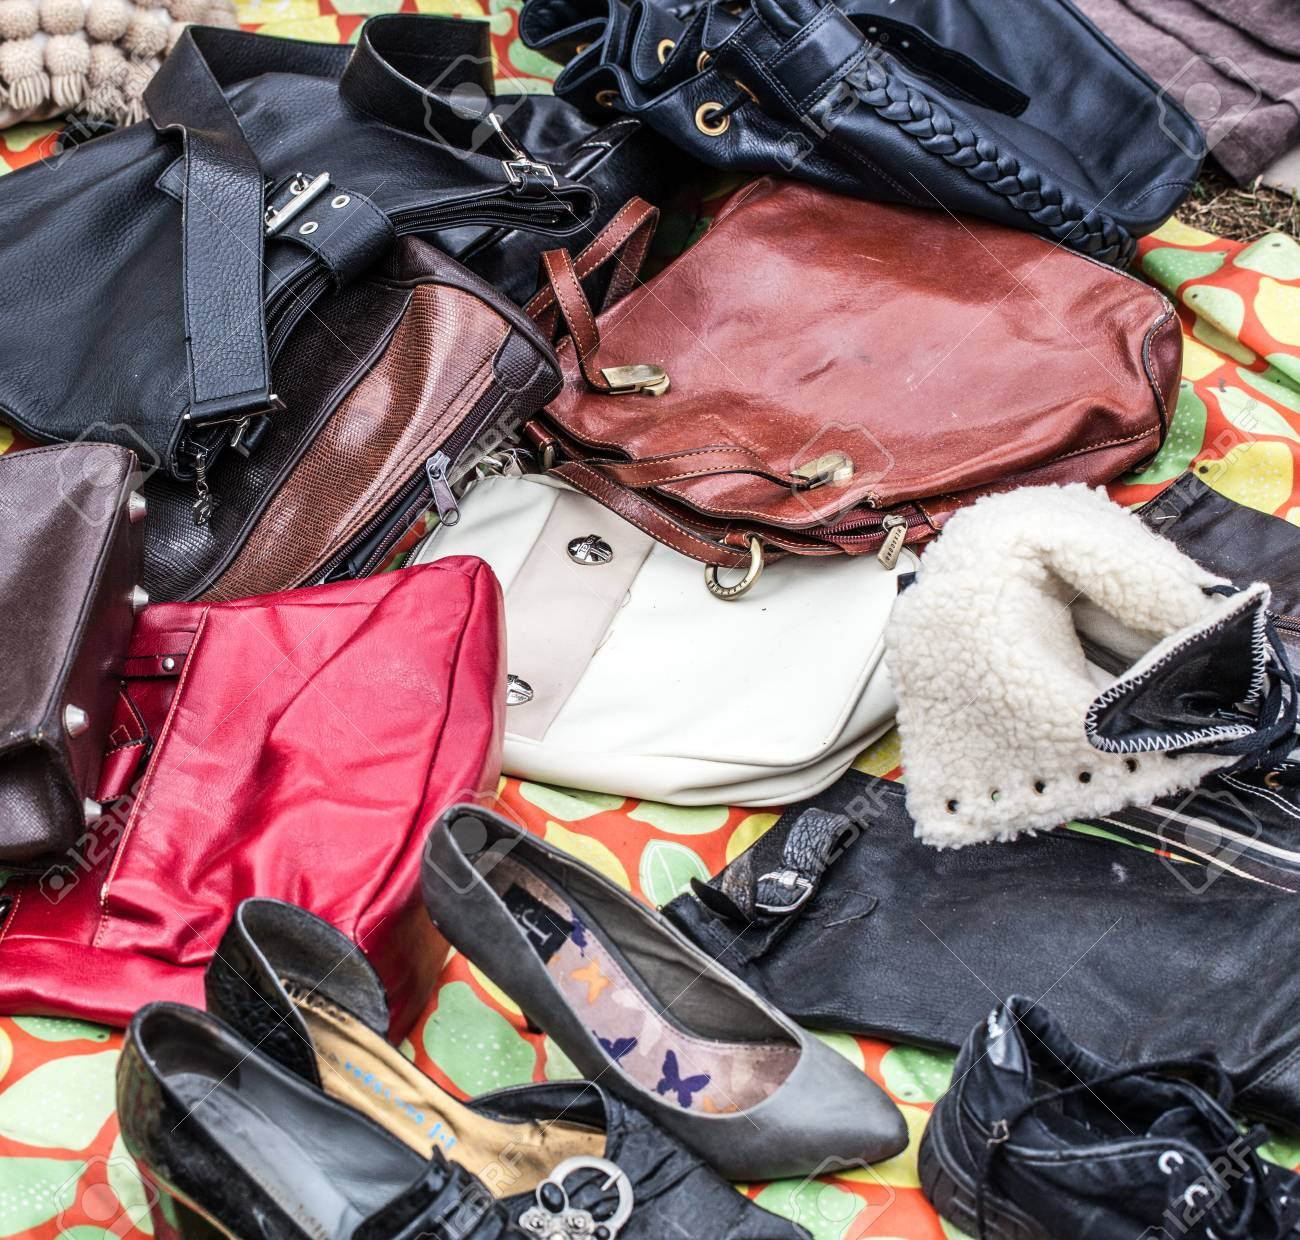 ea0b8a1c7f267 mix of second hand leather women purses and bags on sale at garage sale on  grass